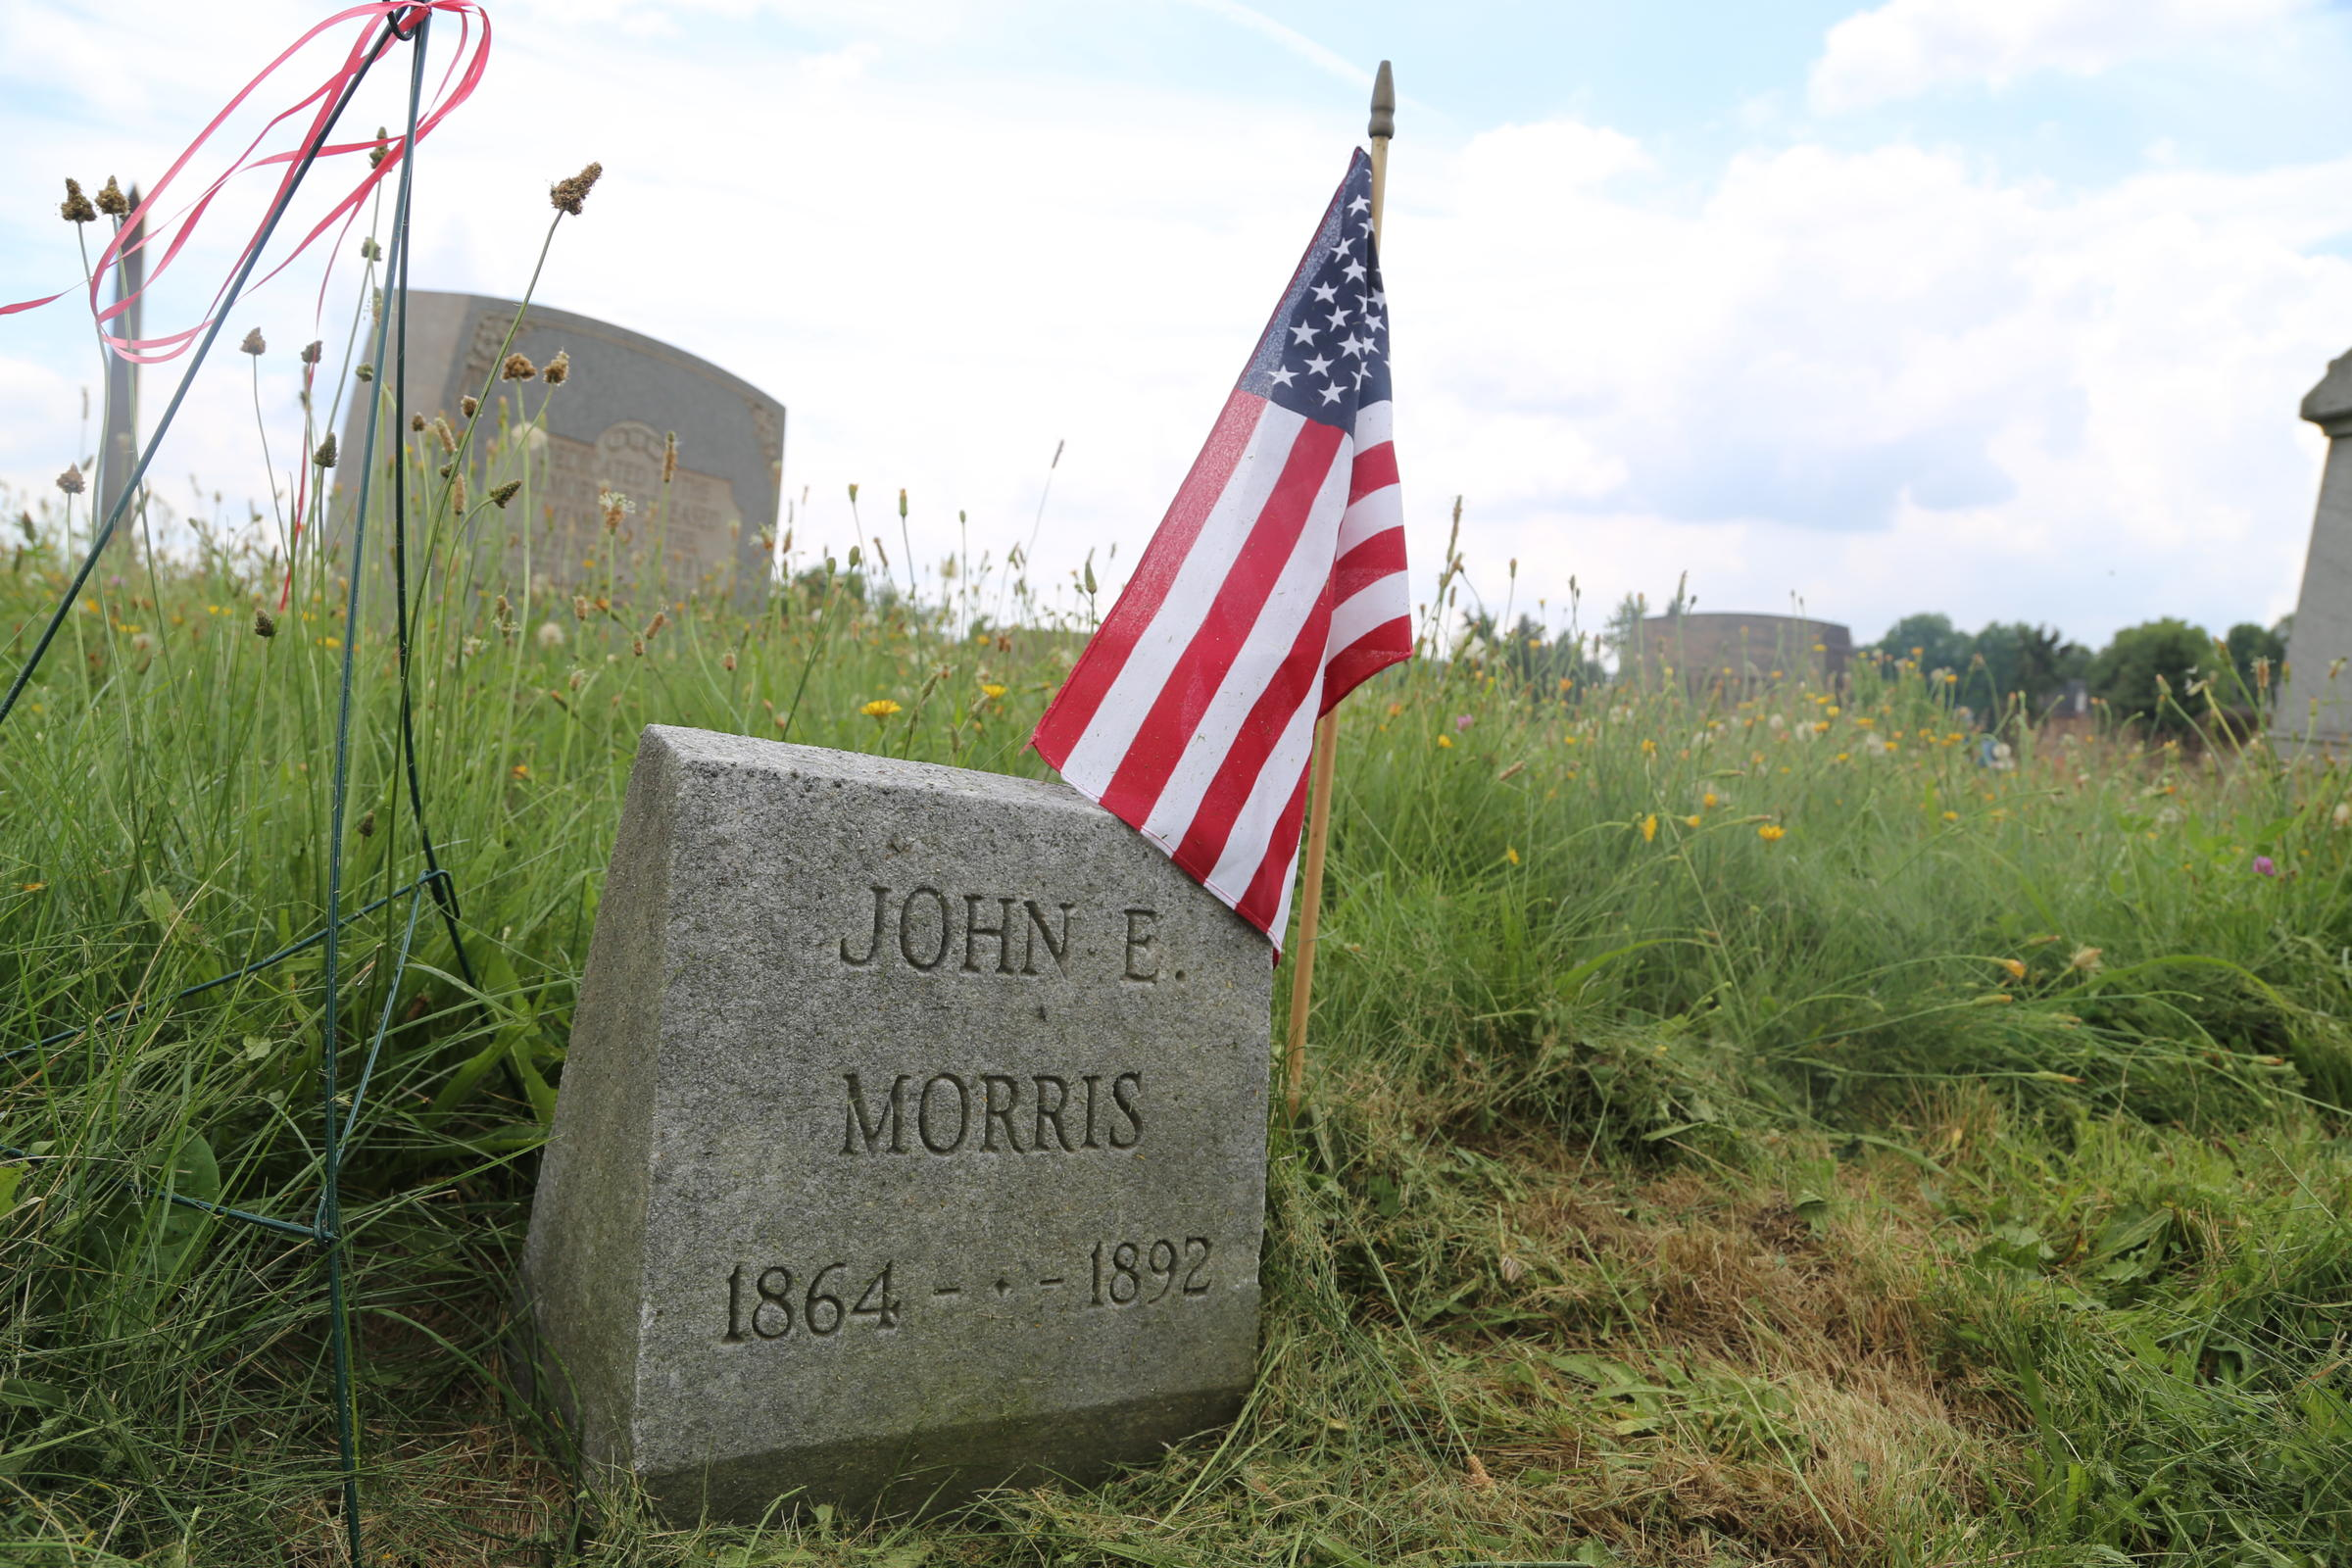 Small U.S. flag flies at the grave of John Morris, the first worker killed in the battle outside of the Homestead Works Steel Mill in 1892. Photo by Alex Popichak / 90.5 WESA